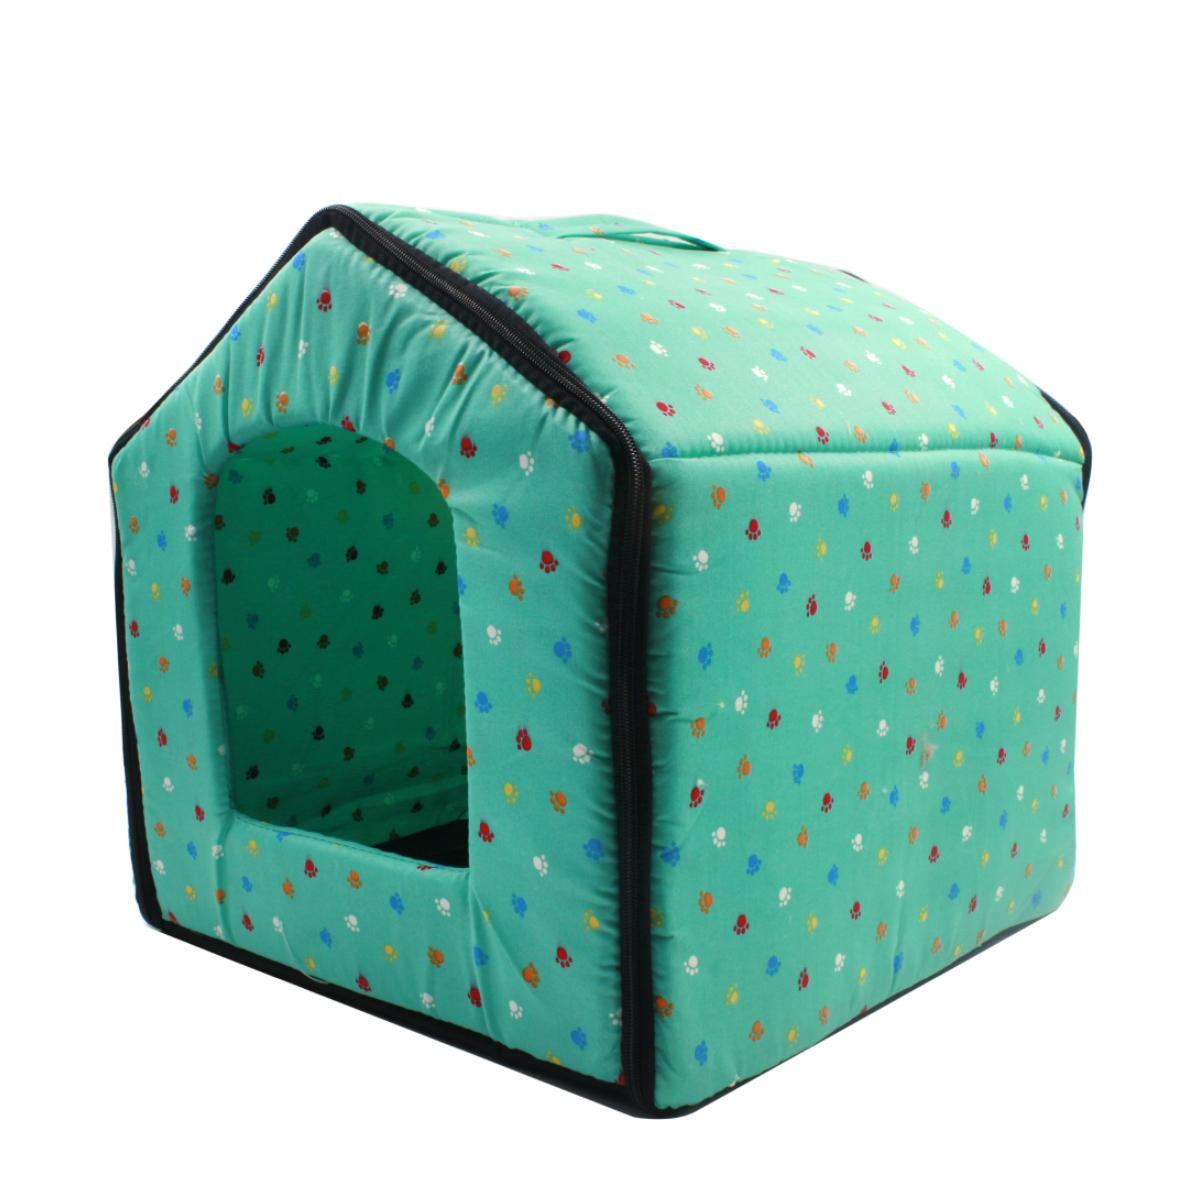 Digisoria Paws Pattern Pet Dog House (green) By Digisoria.